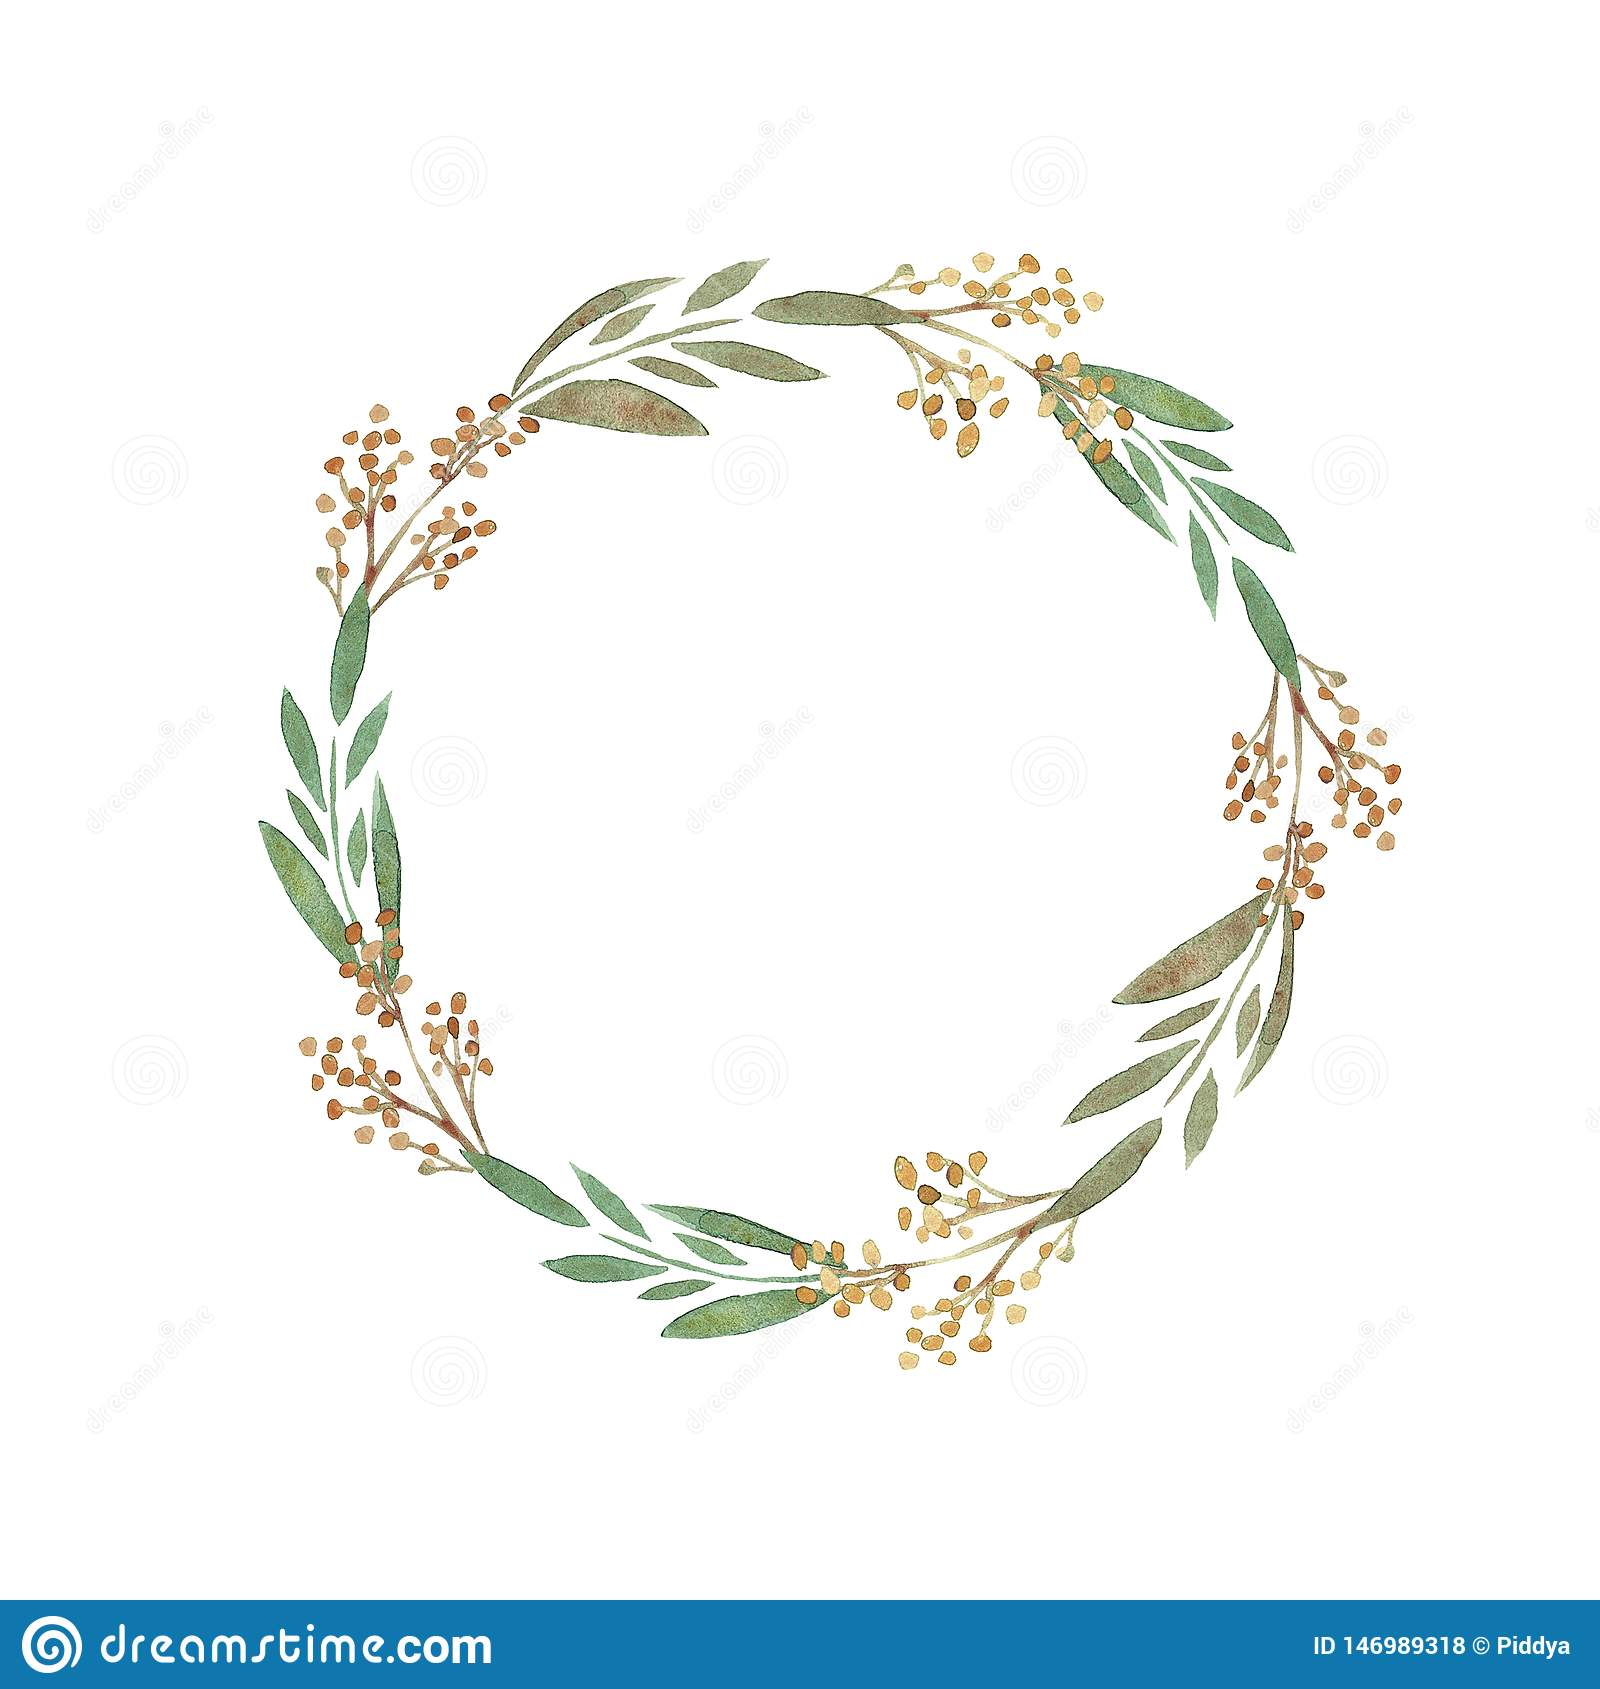 Watercolor wreath of branches